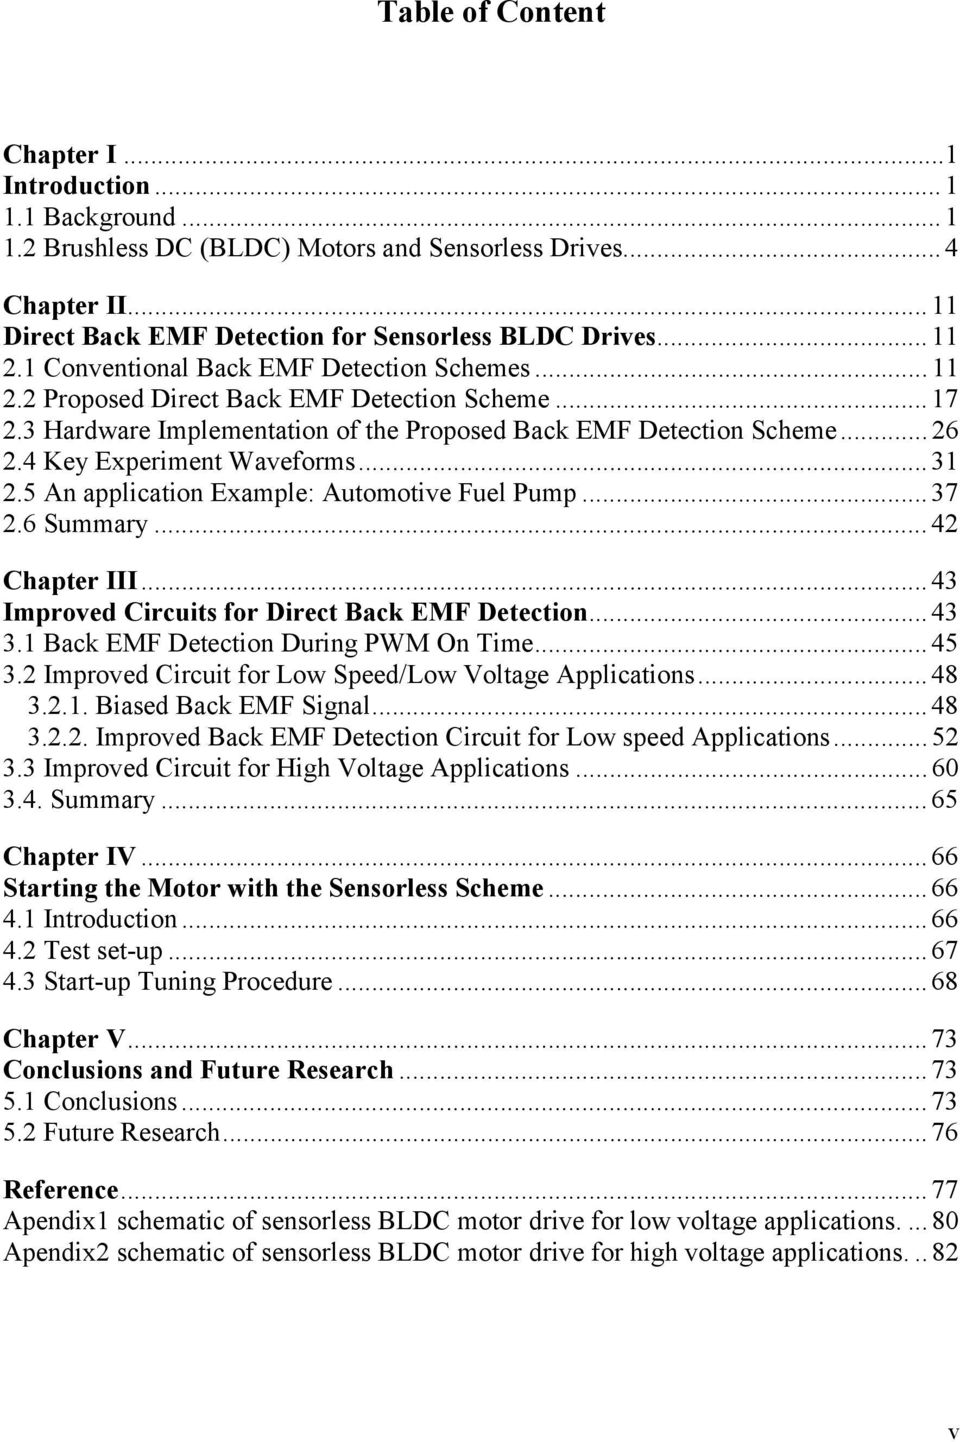 4 Key Experiment Waveforms... 31 2.5 An application Example: Automotive Fuel Pump... 37 2.6 Summary... 42 Chapter III... 43 Improved Circuits for Direct Back EMF Detection... 43 3.